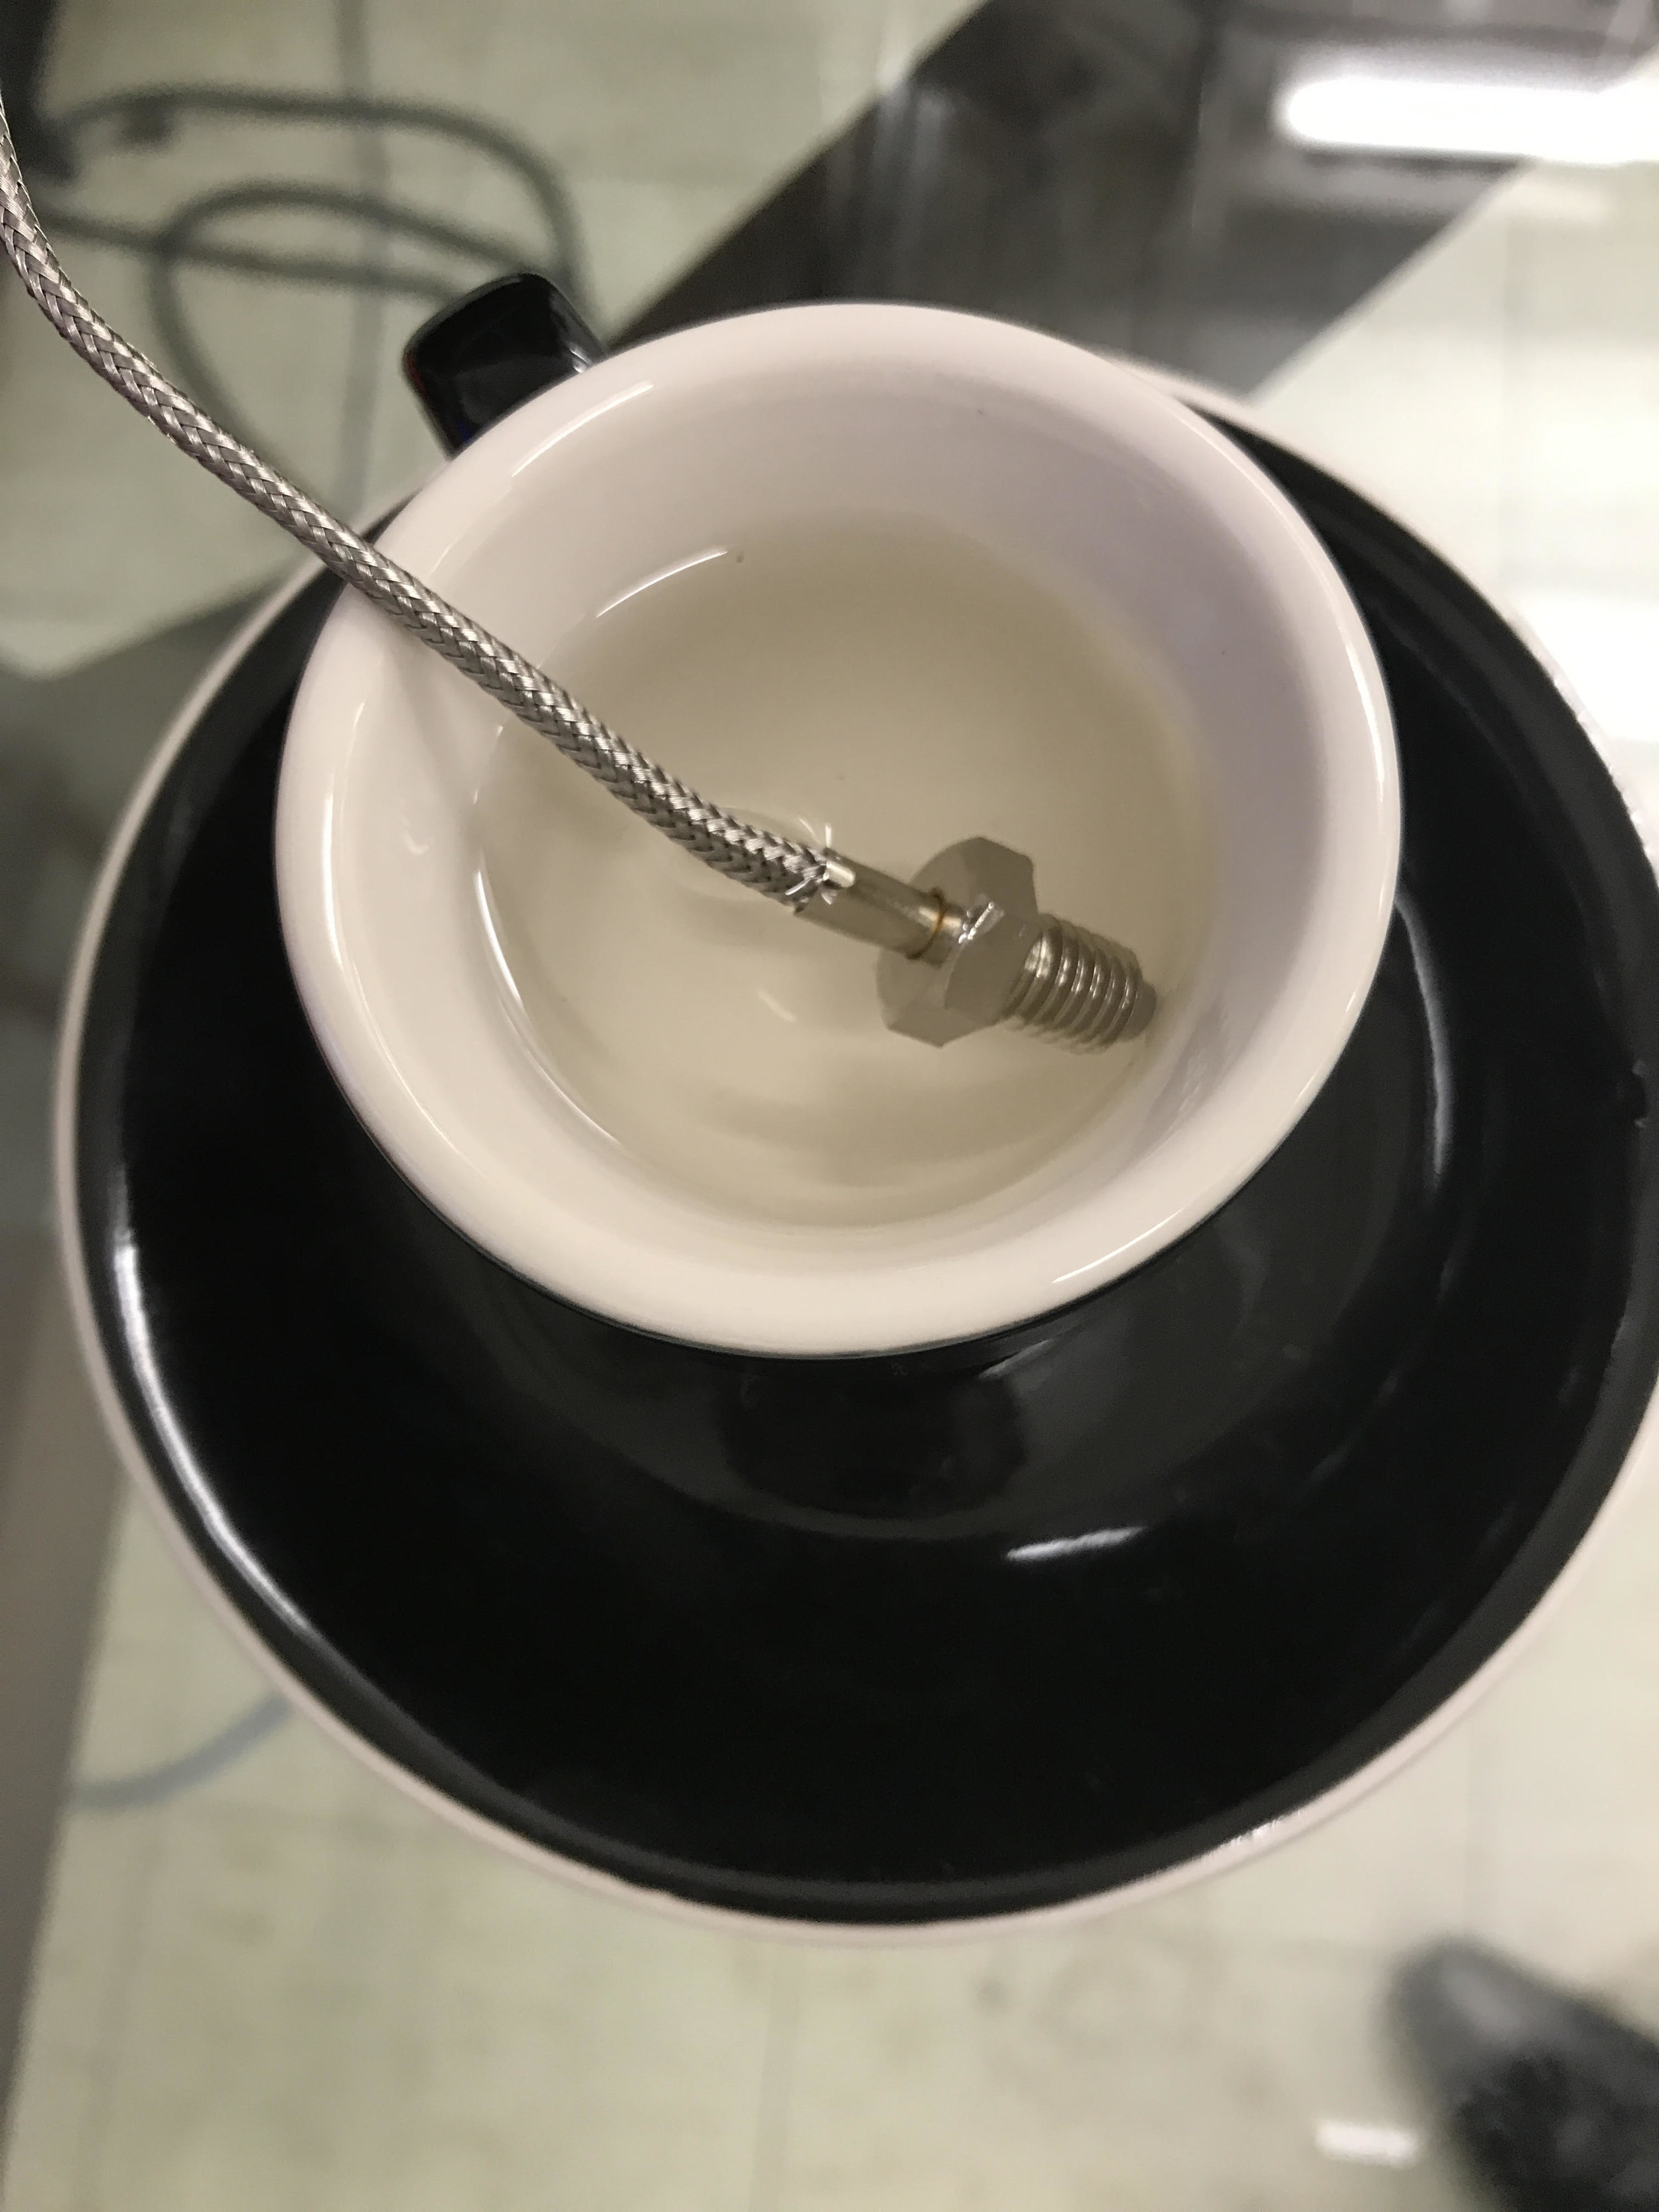 zoom_thermocouple_in_cup.jpg